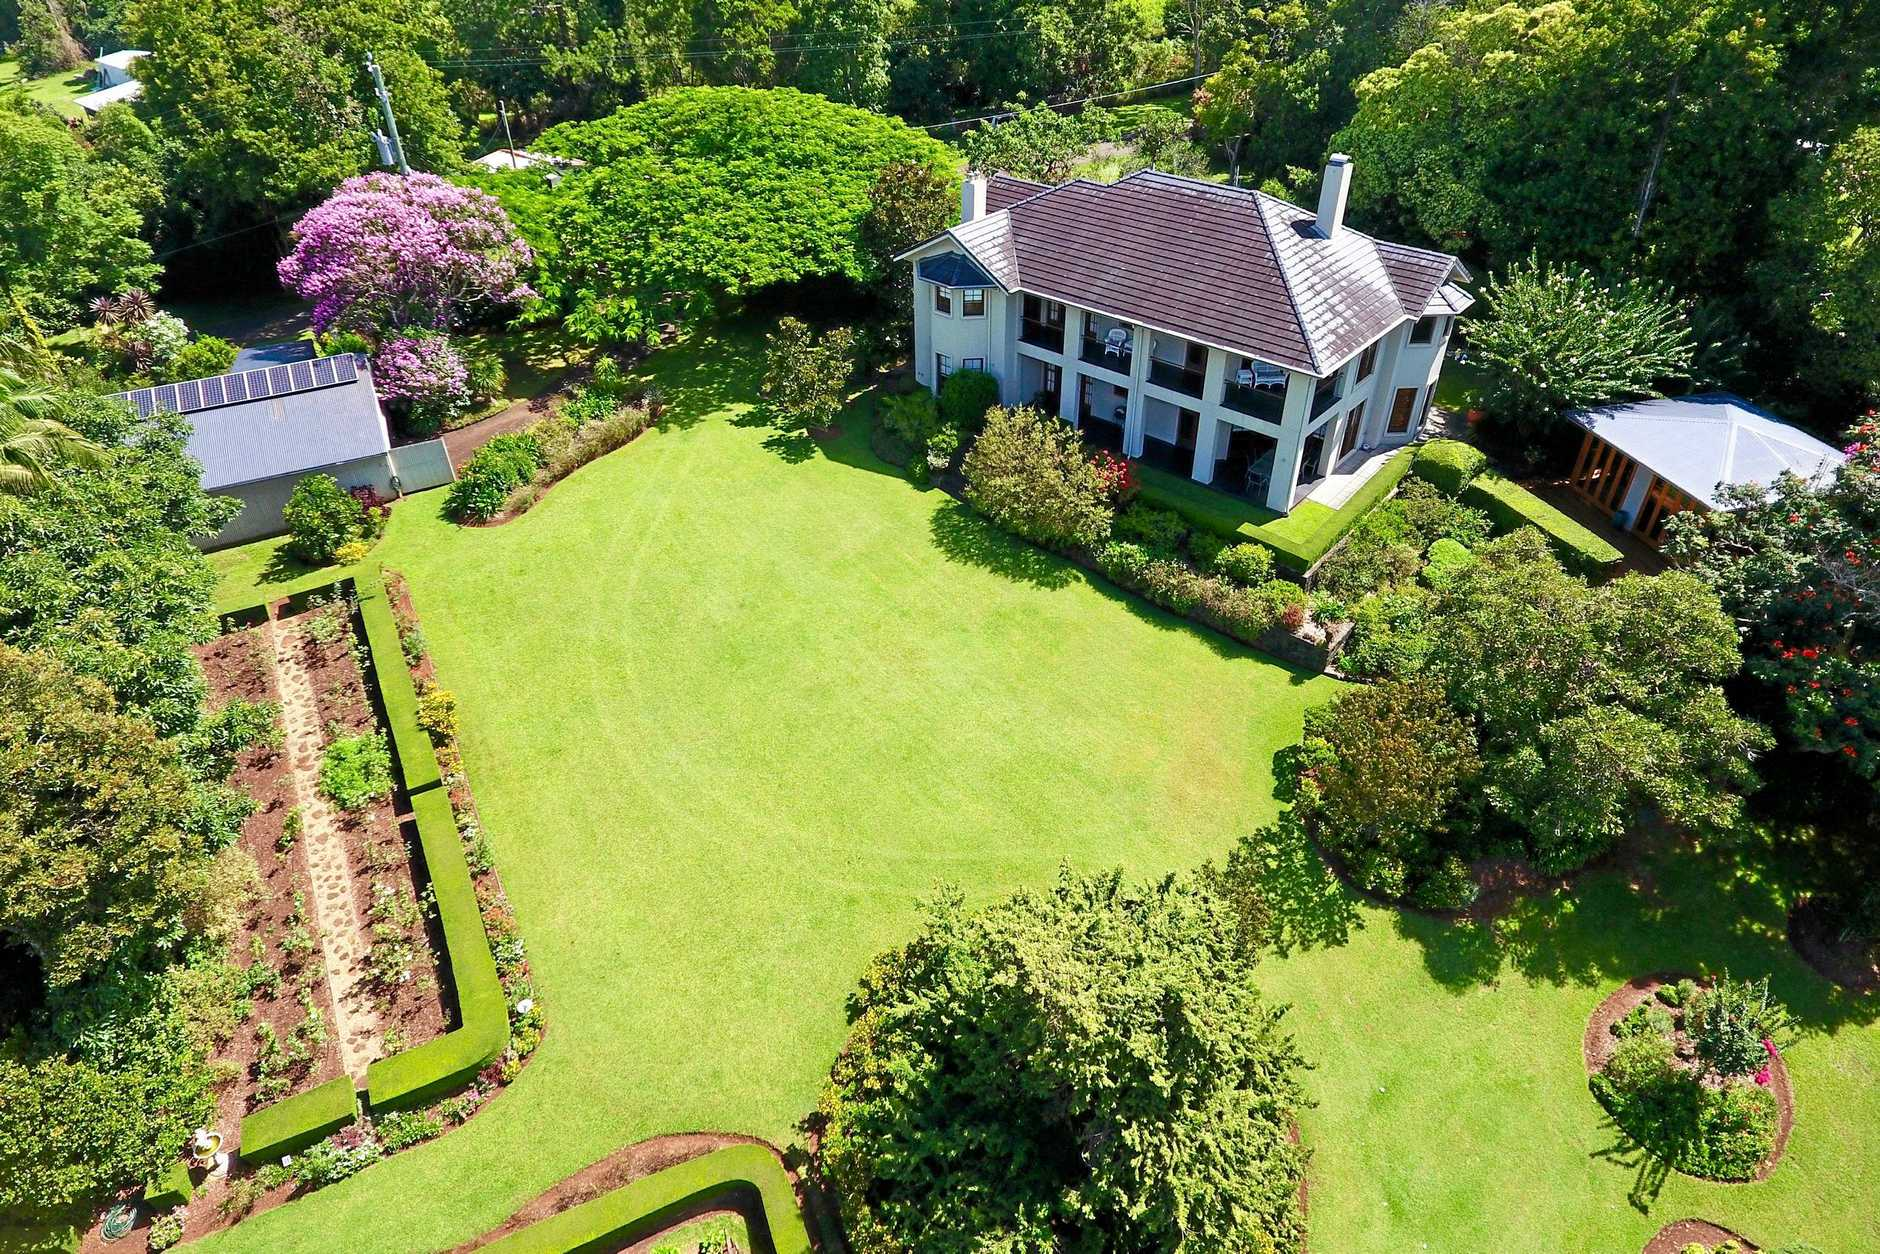 Birds eye view of 327 Western Avenue, Montville which has recently come onto the market, listed for $2 million.